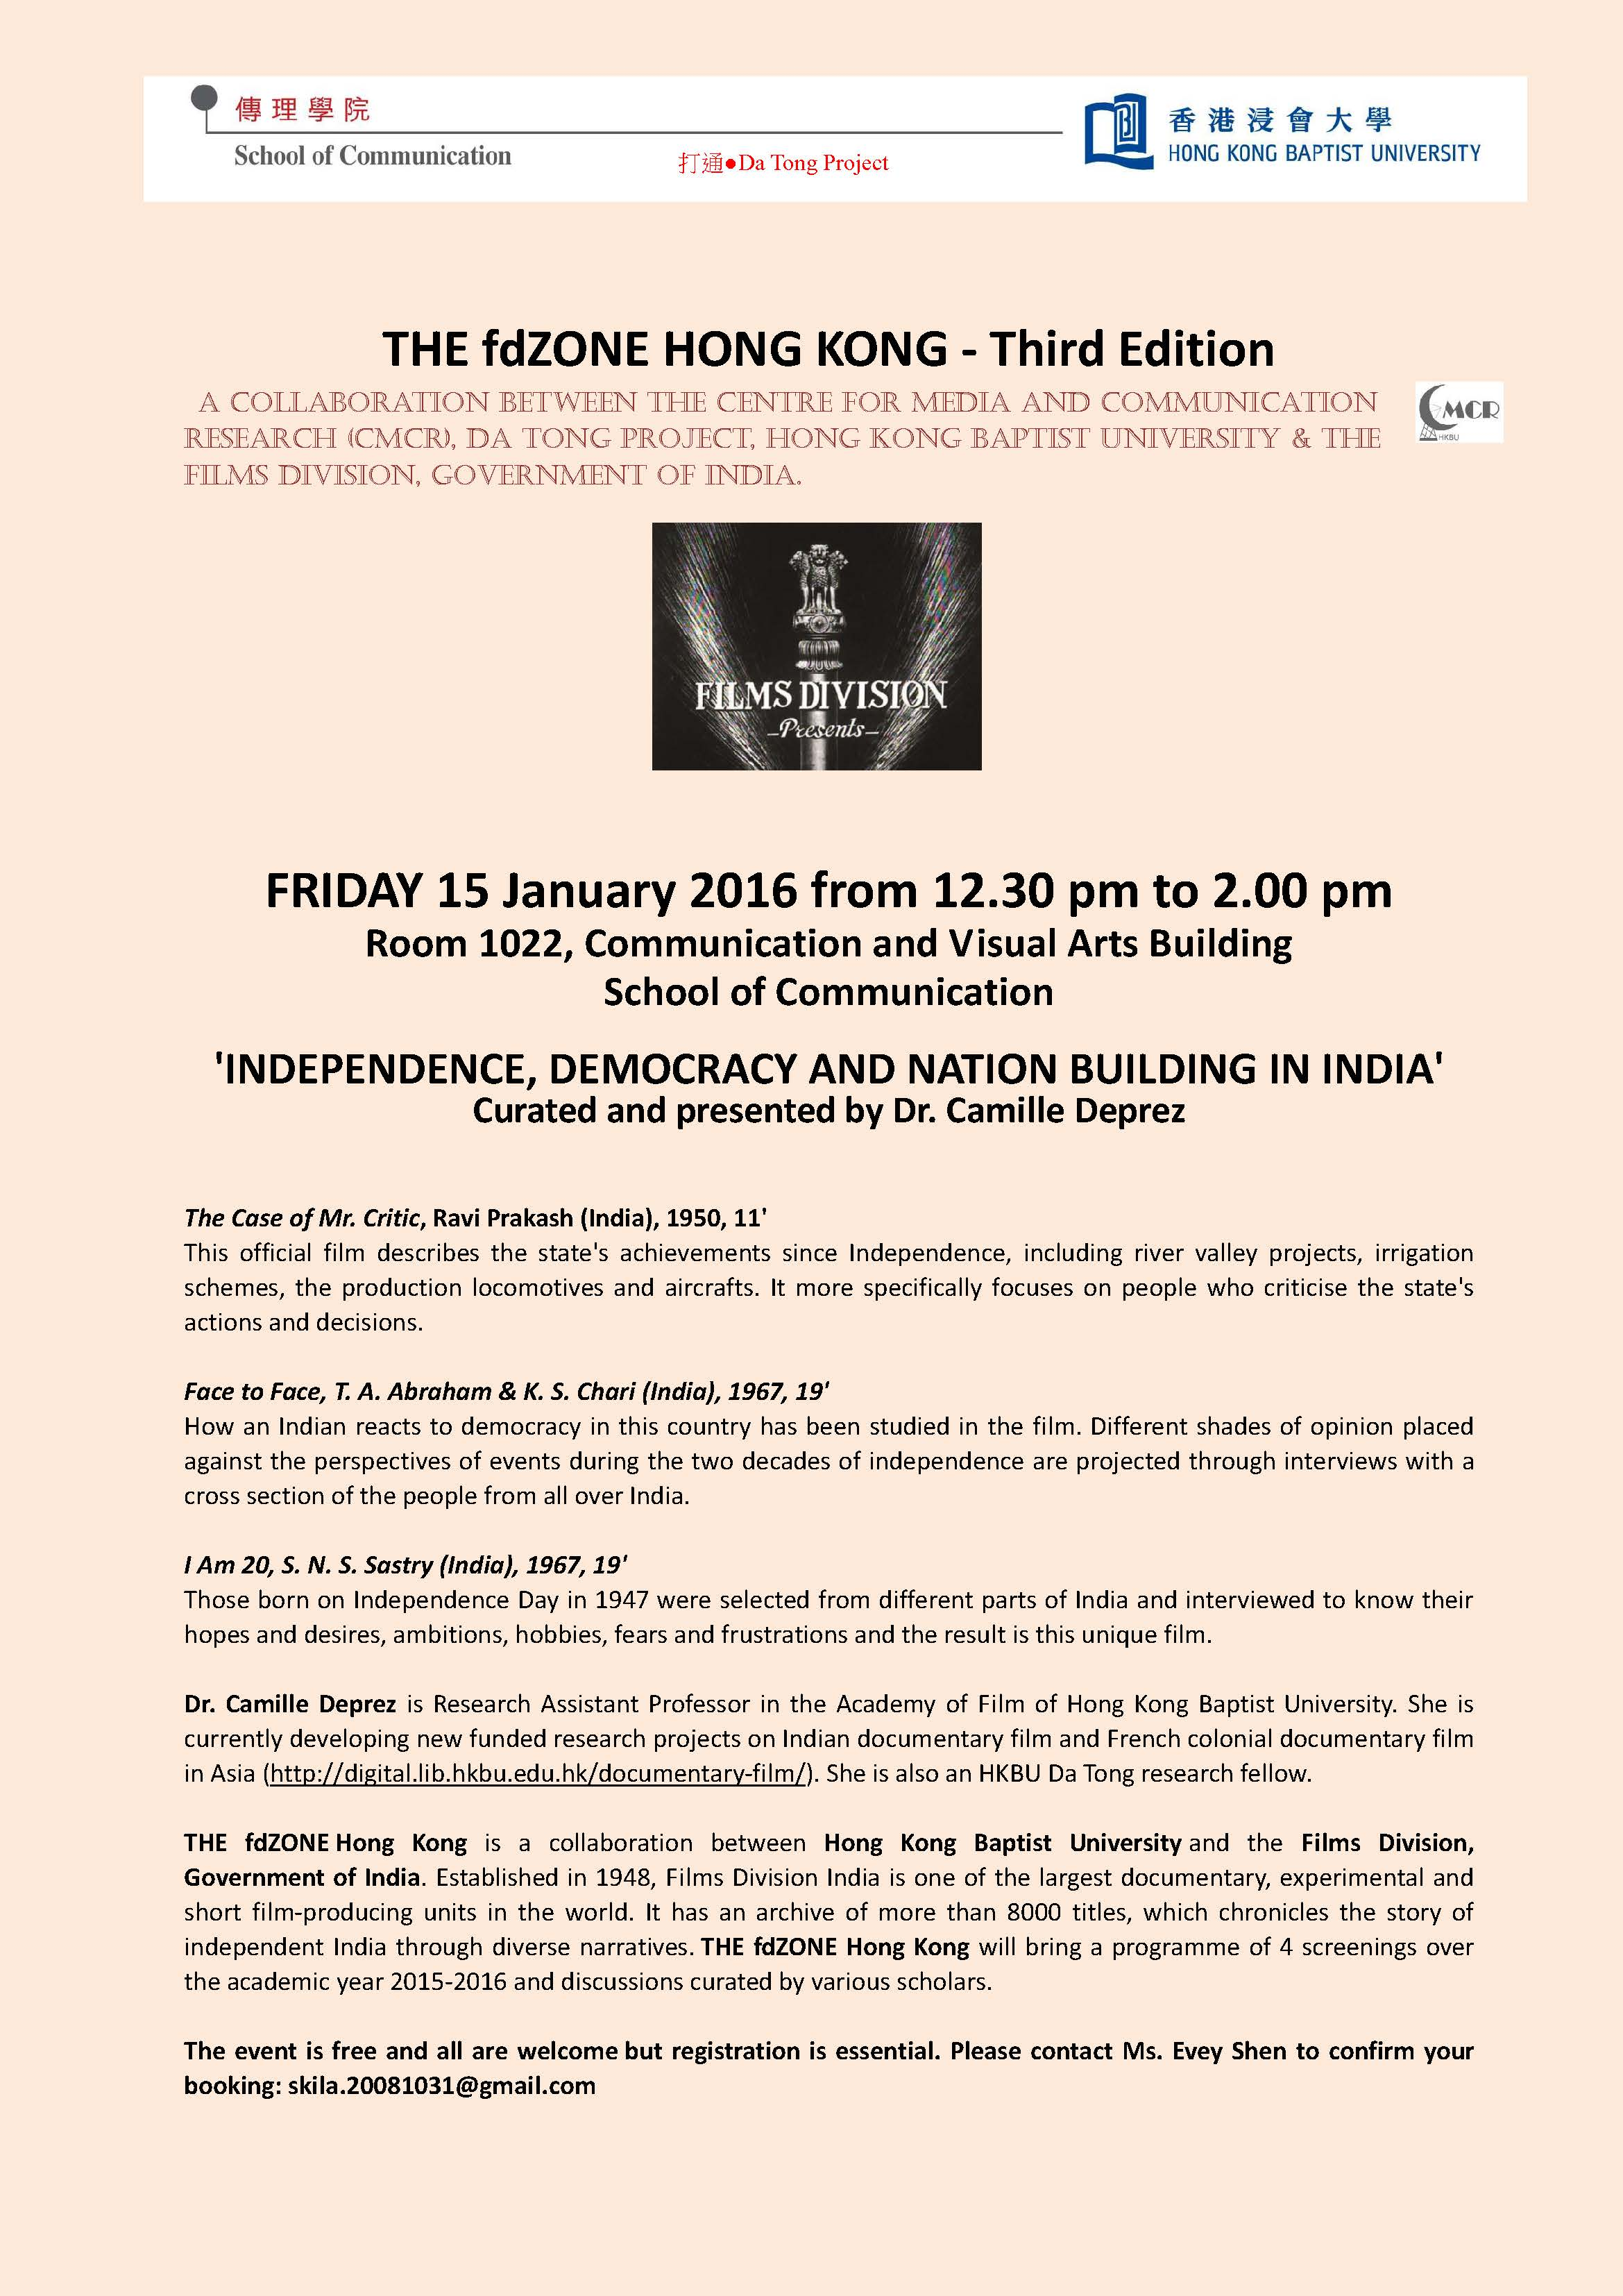 Film Screening - THE fdZONE HONG KONG - Third Edition